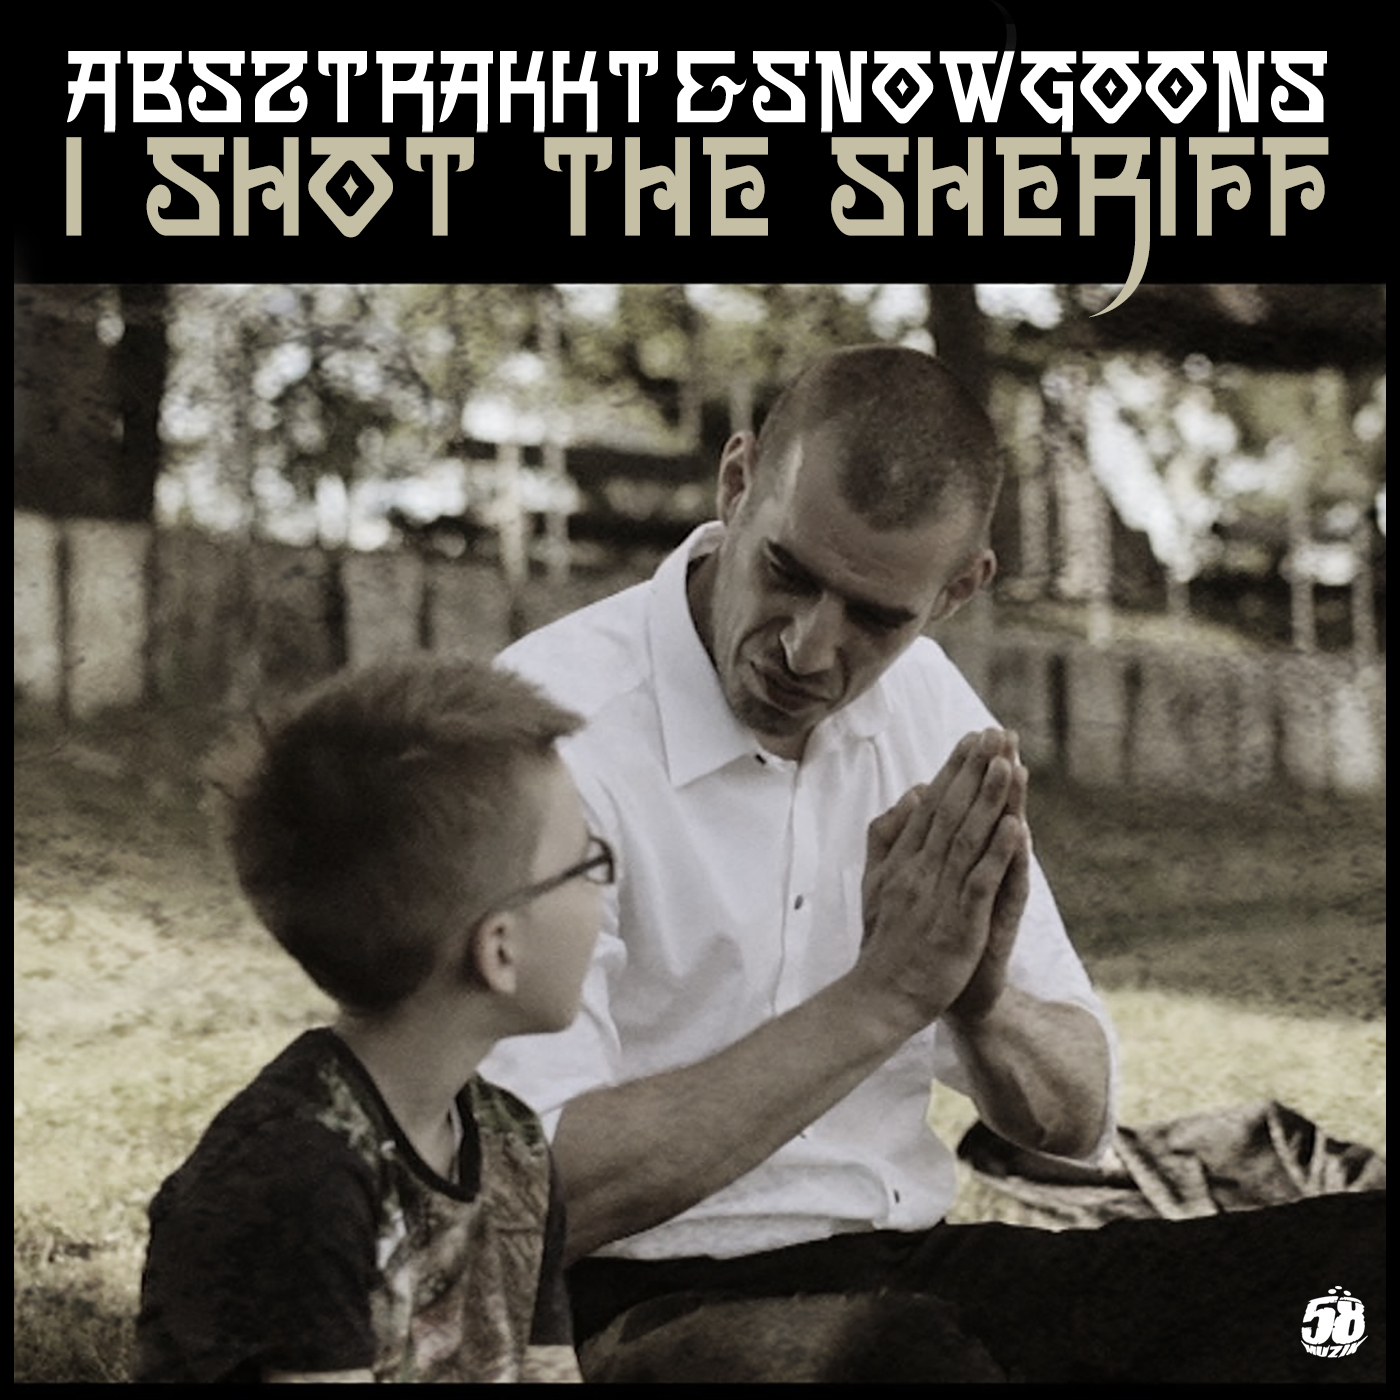 Absztrakkt & Snowgoons - i Shot the Sheriff Cover